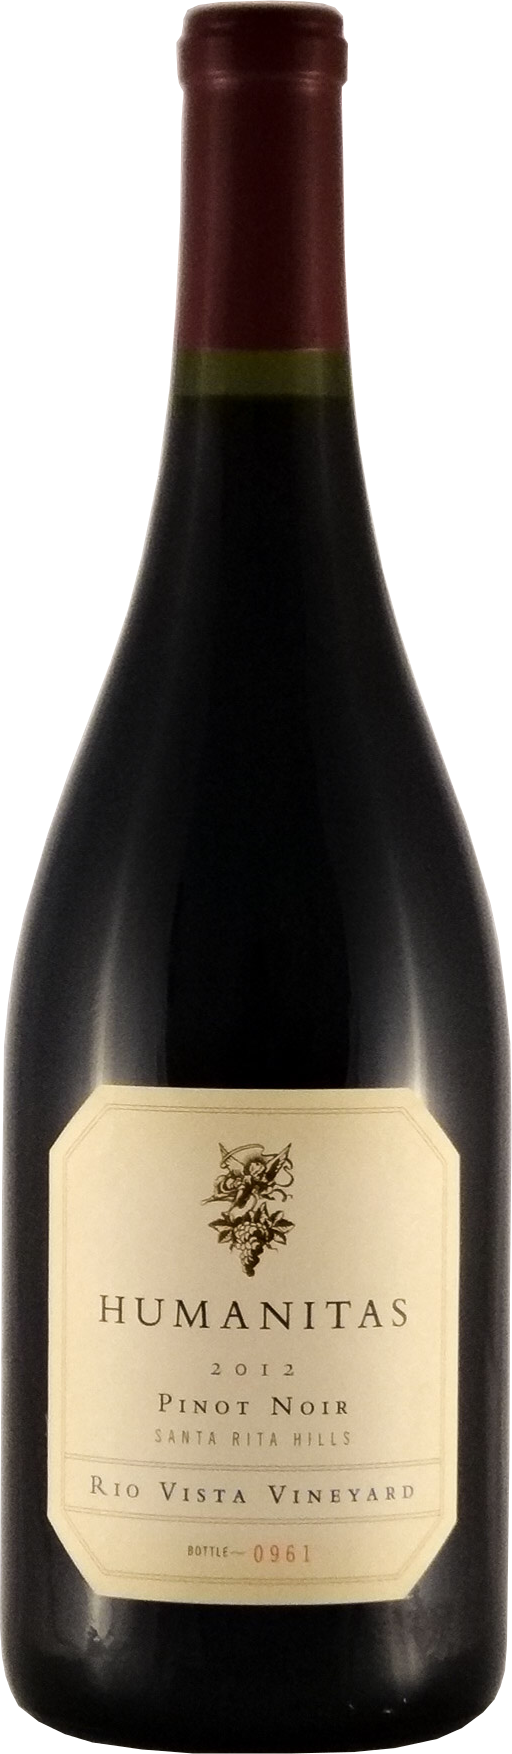 2014 Humanitas 'Good Earth' Pinot Noir Rio Vista Vineyard - Qorkz